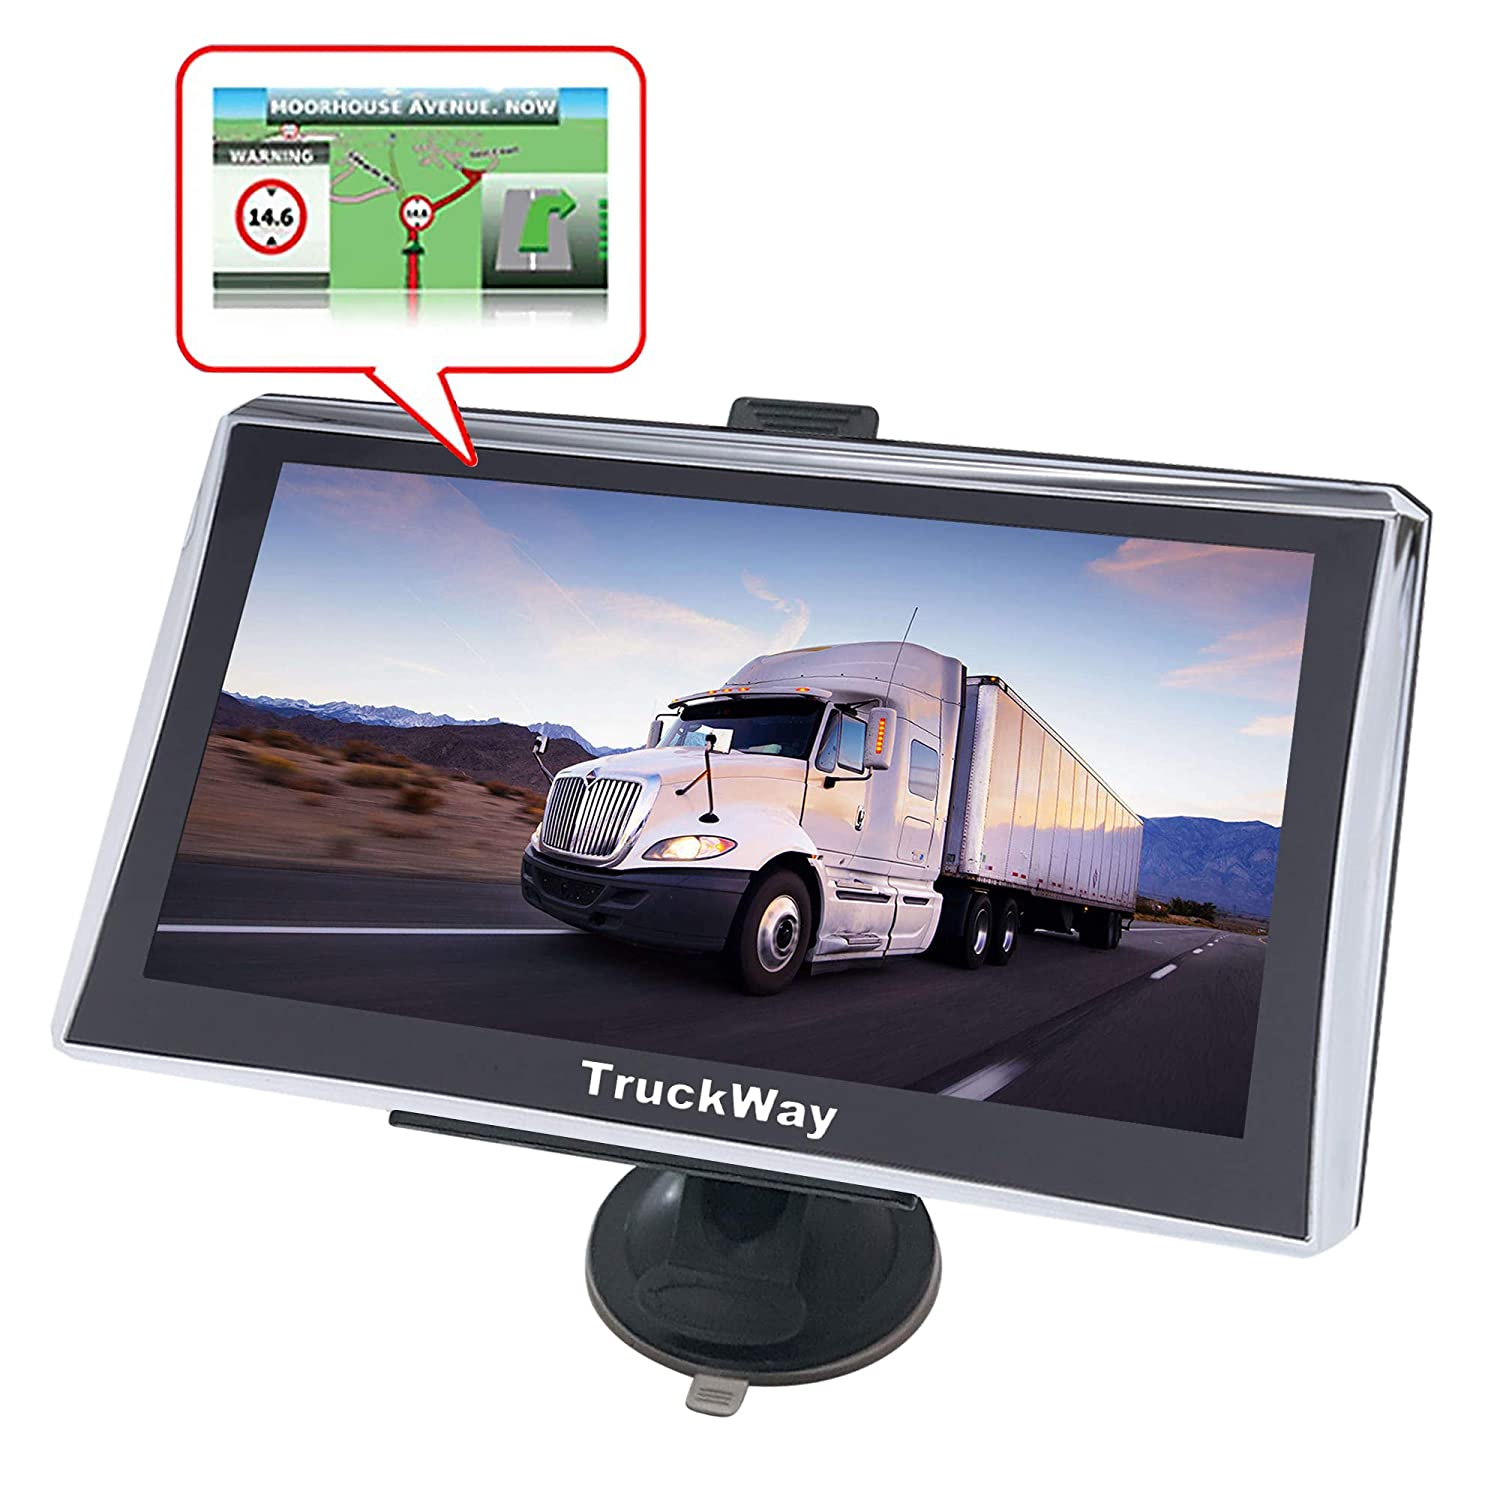 Turn by Turn Directions Pro Series 720 Truck GPS 7 Inch for Truck Drivers Navigation Lifetime North America Maps USA + Canada TruckWay GPS Pro Series Model 720 3D /& 2D Maps Touch Screen